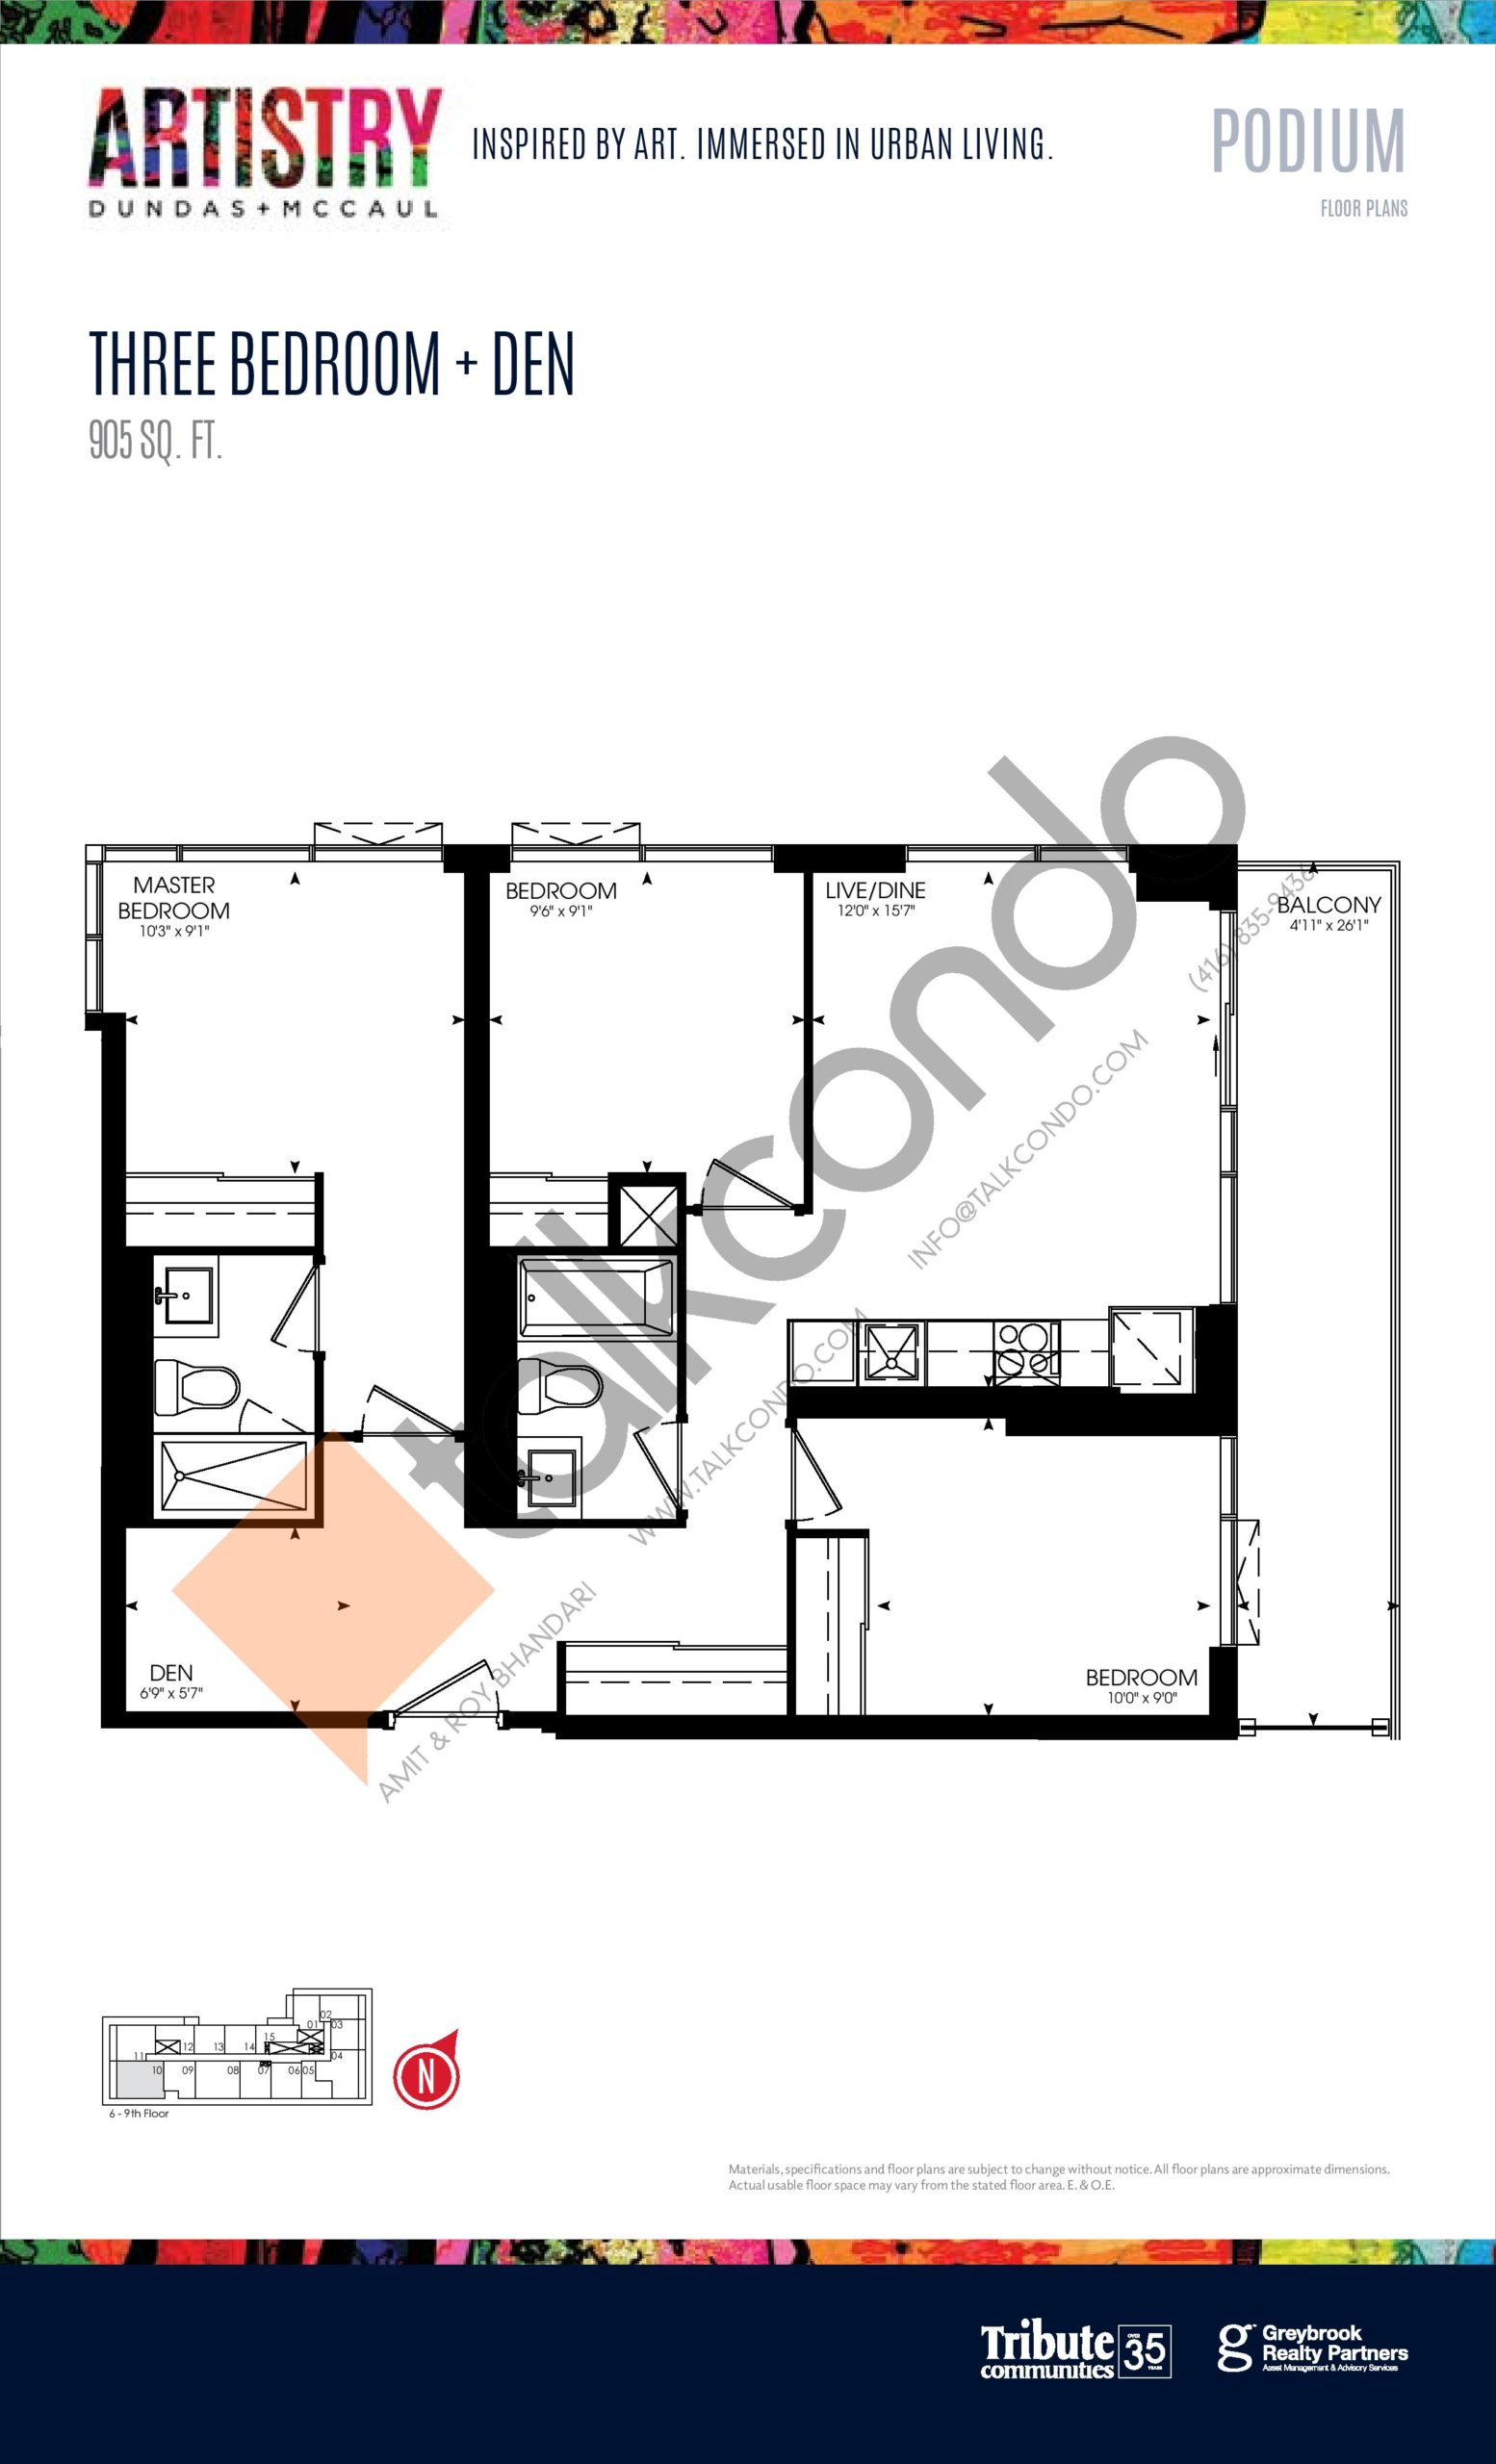 905 sq. ft. - Podium Floor Plan at Artistry Condos - 905 sq.ft